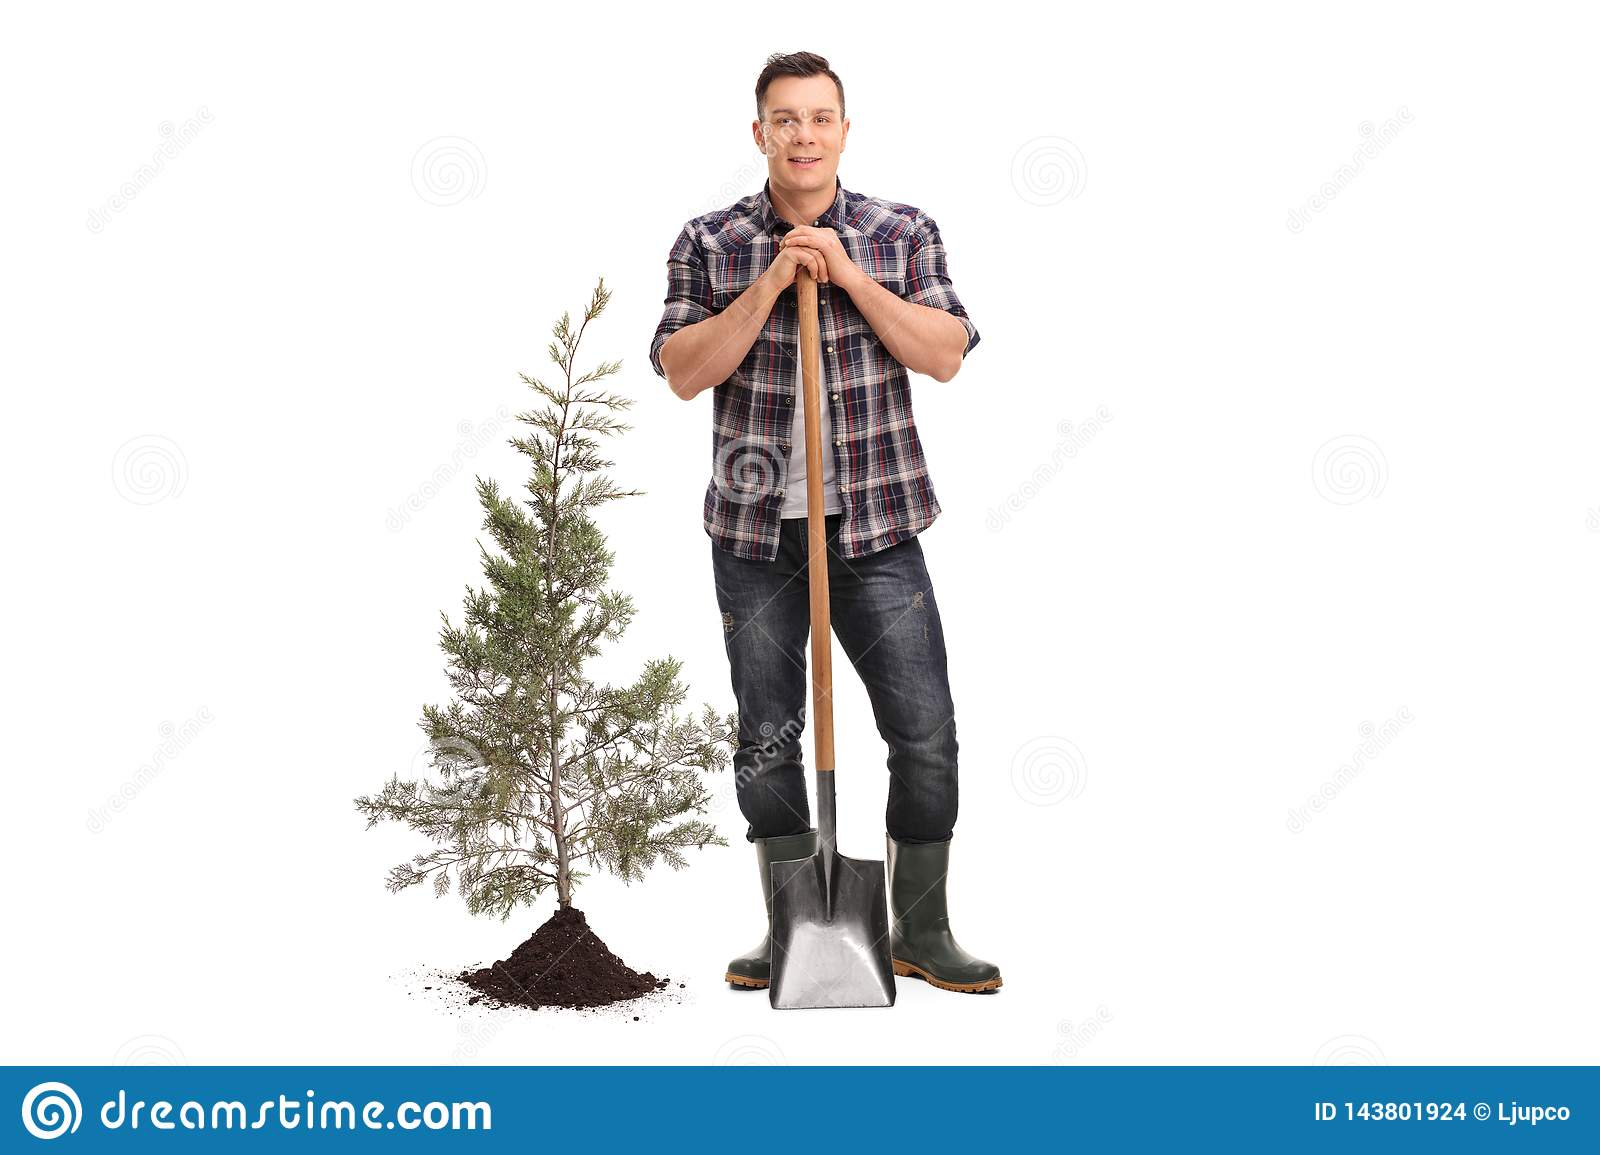 Man posing with a shovel next to a planted tree and soil